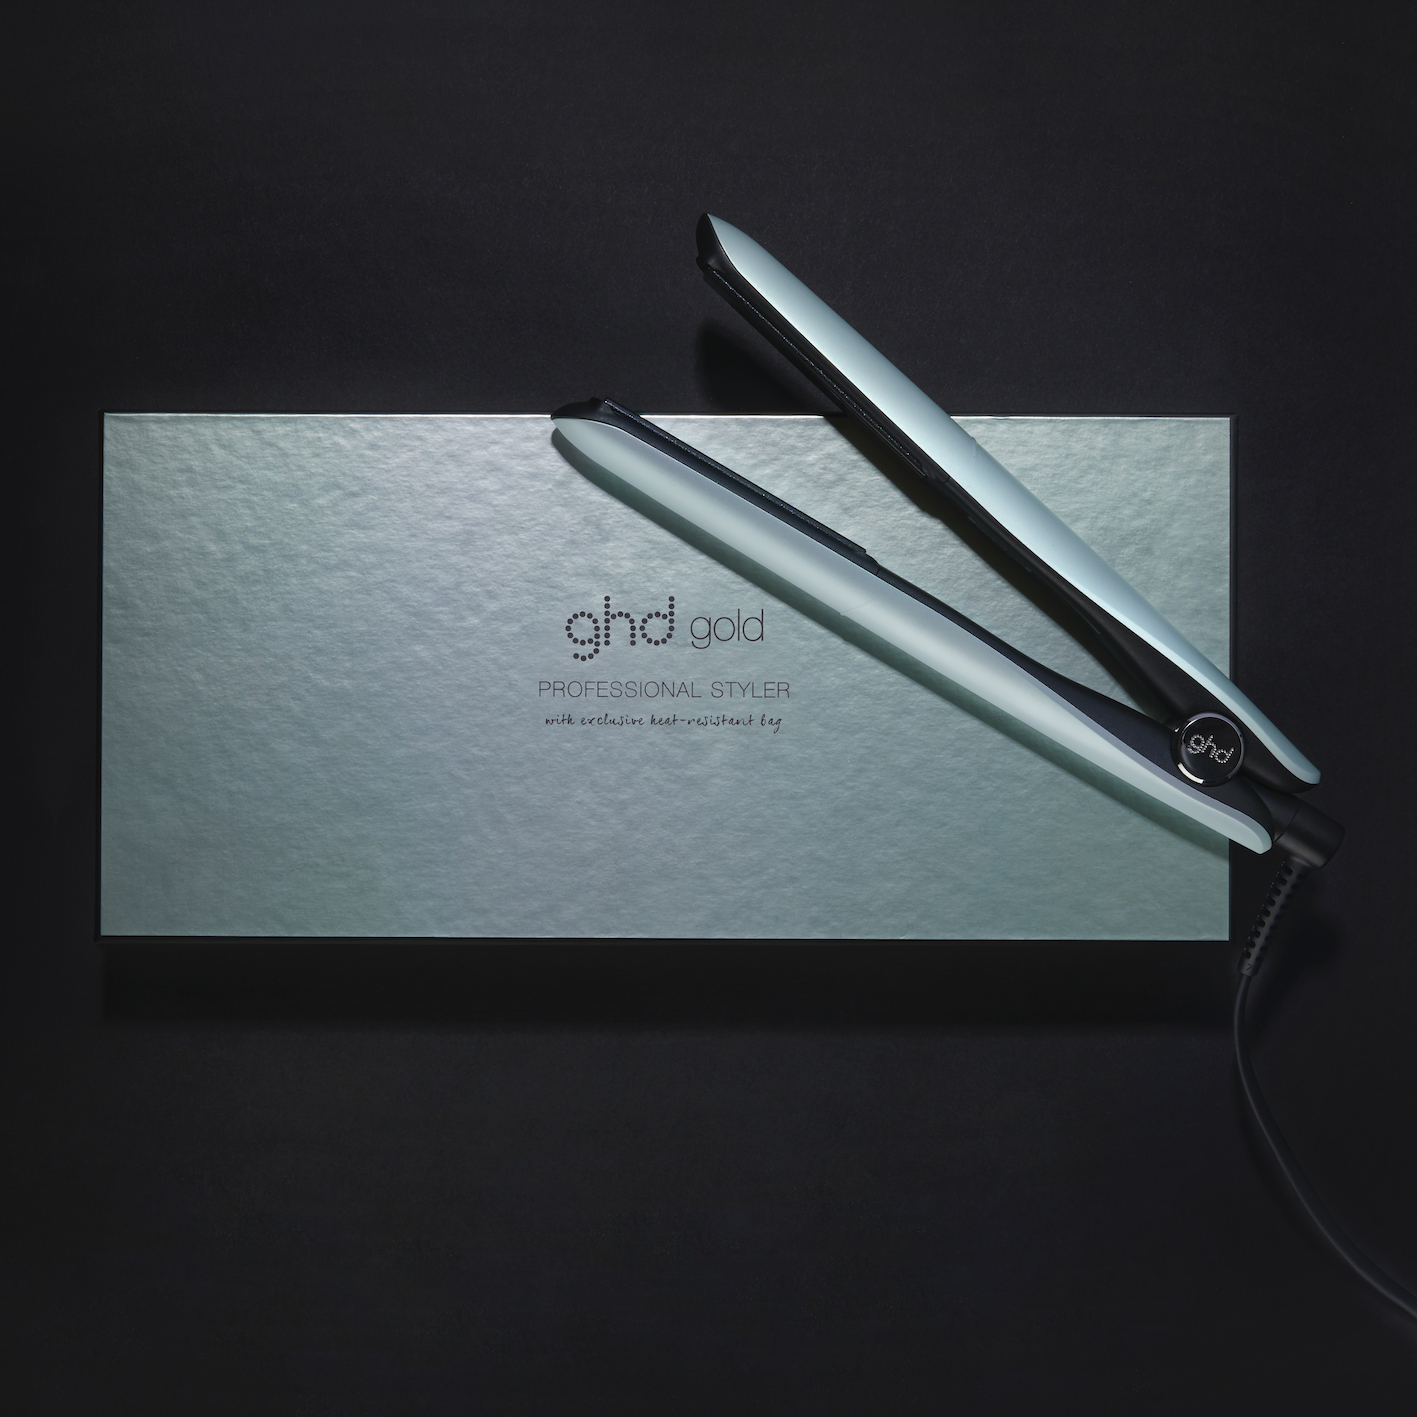 ghd Upbeat Collection gold styler_Campaign Imagery_Neo-Mint (4)